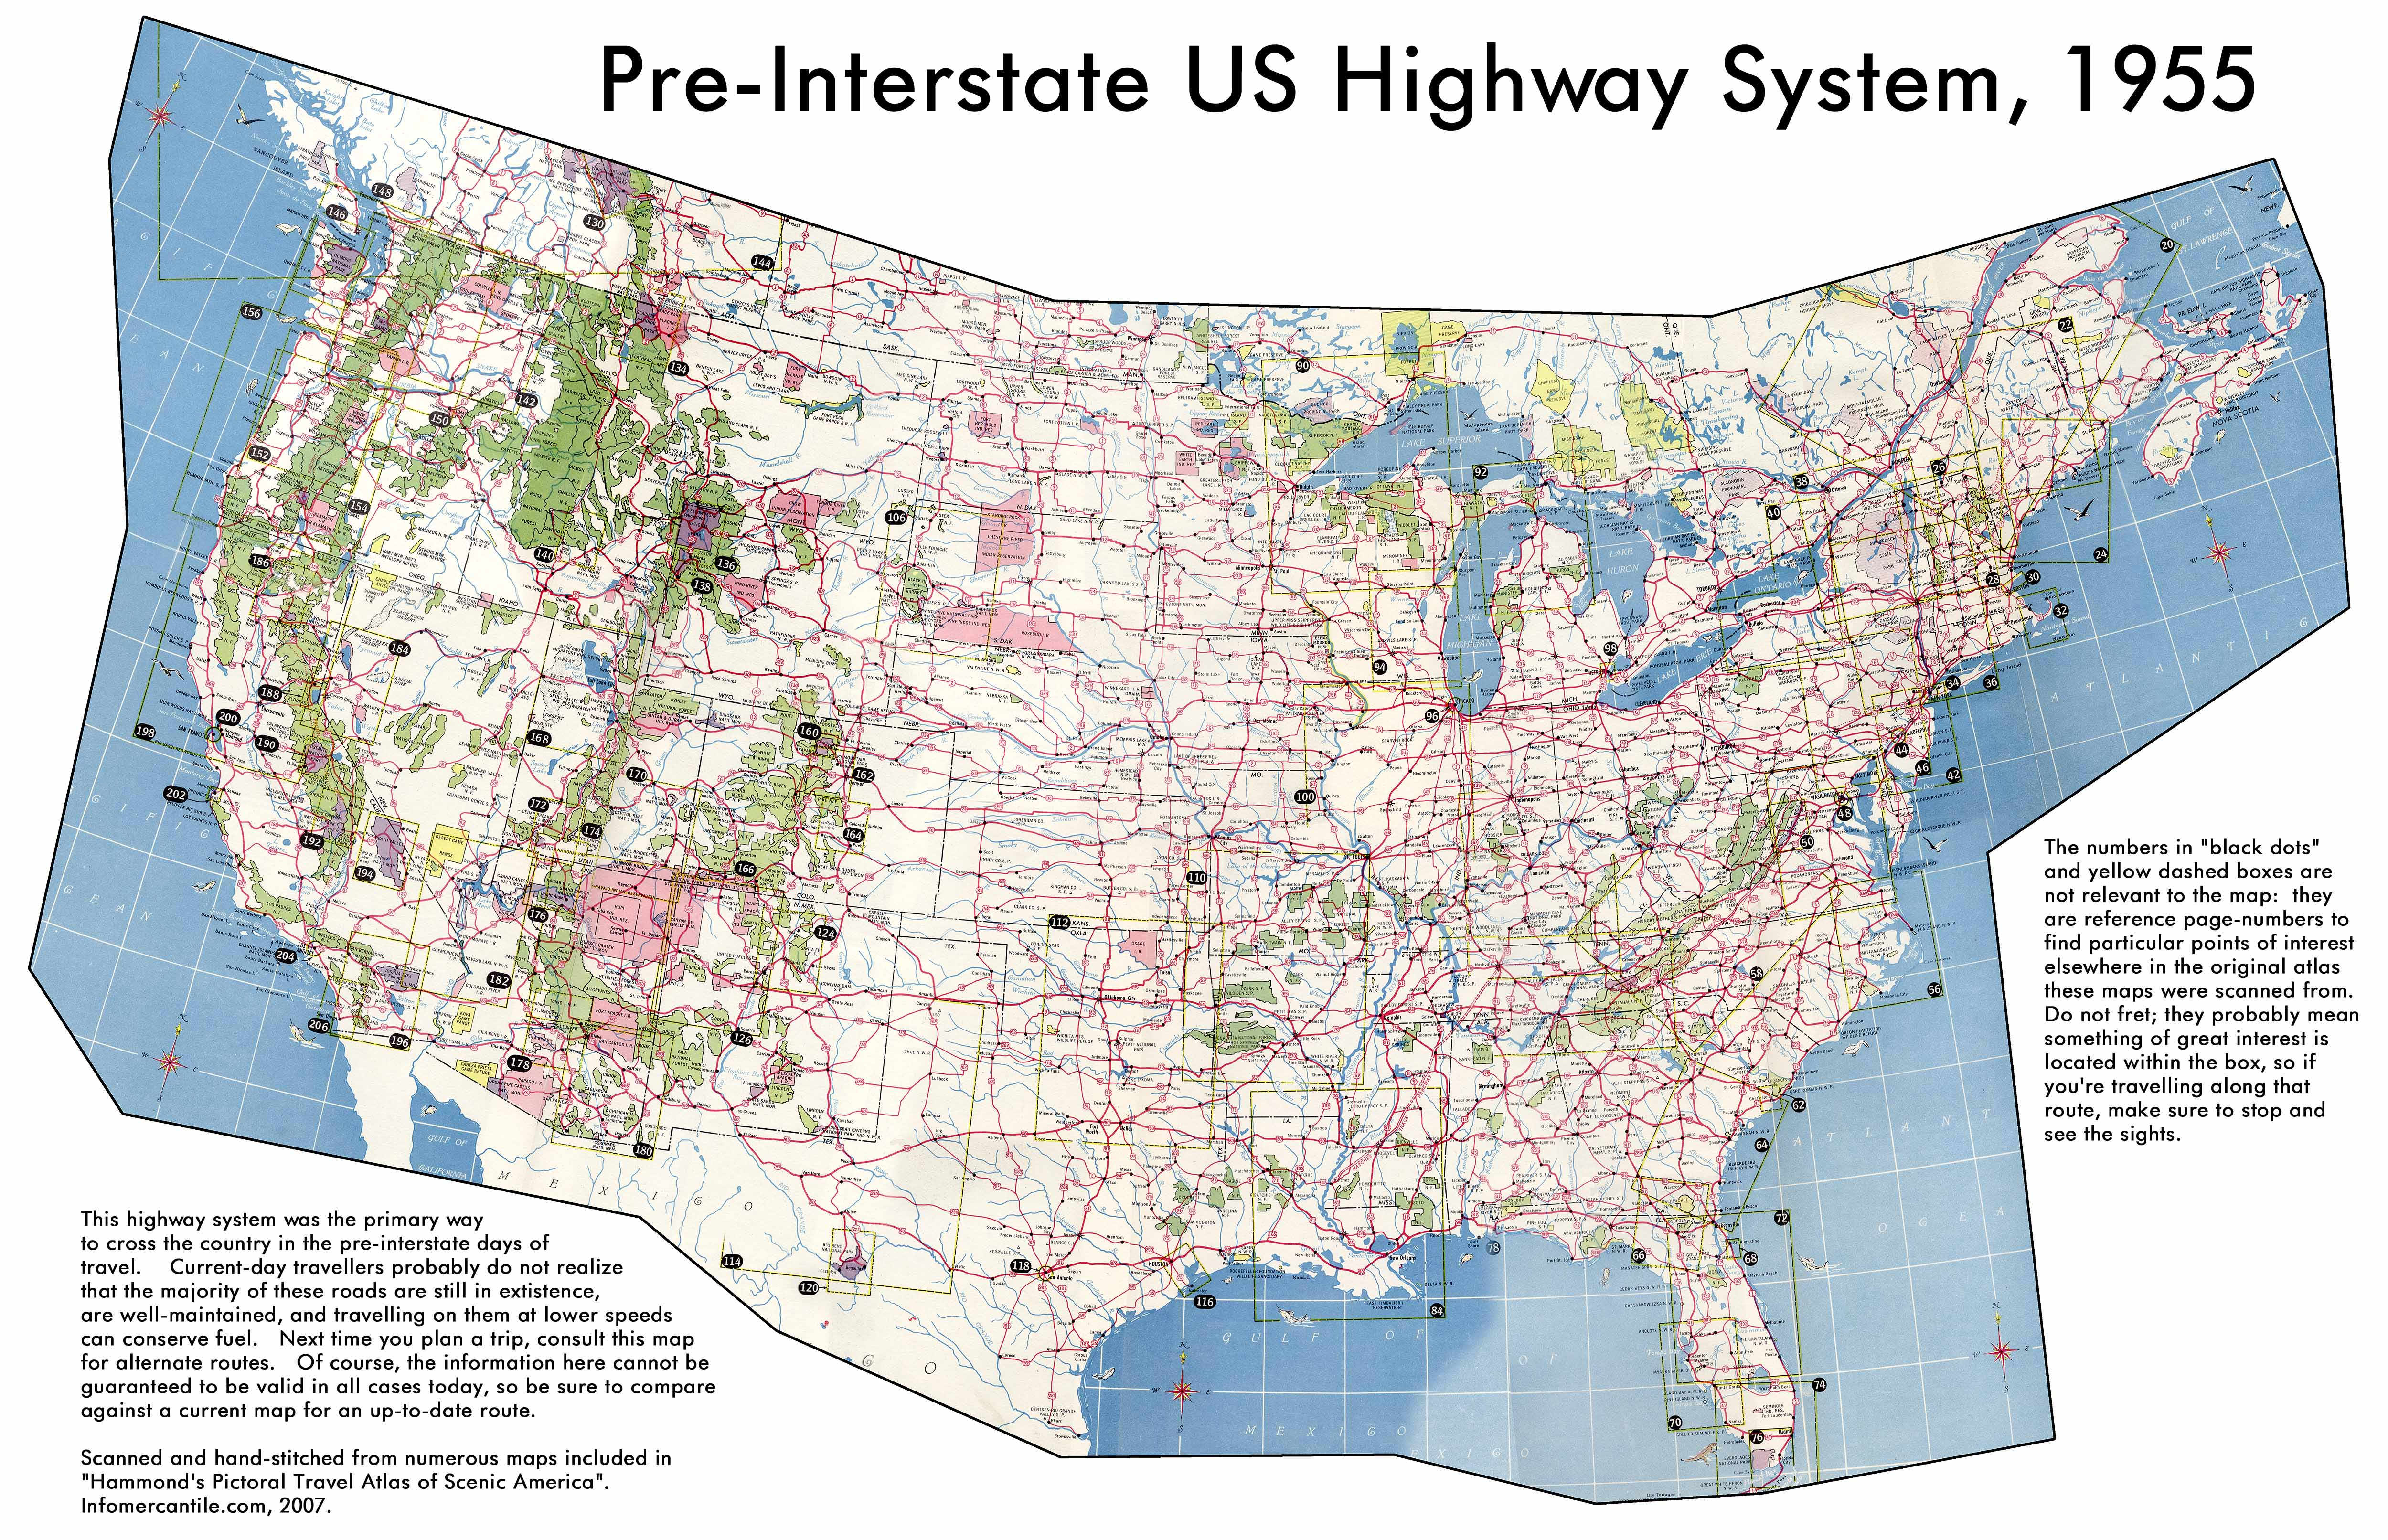 Large Highways Map Of The USA USA Maps Of The USA Maps US - Usa map cities and states and roads